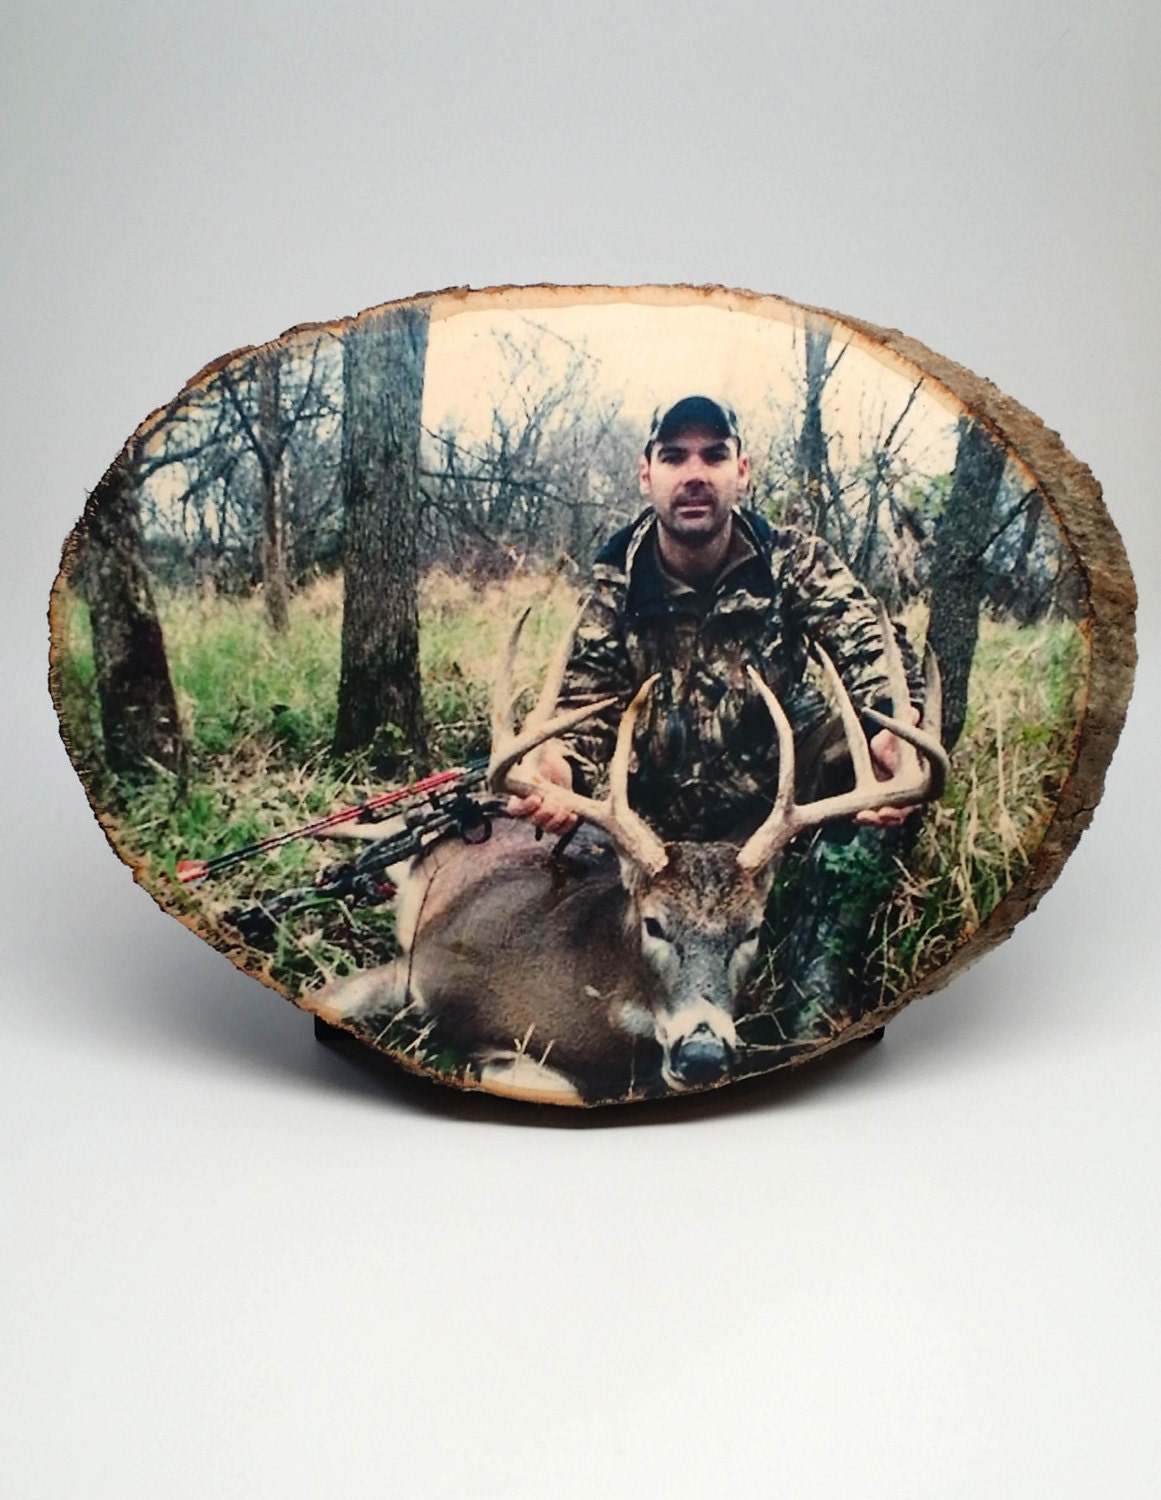 Https Www Etsy Com Listing 218079636 Hunting Decor Your Hunting Picture On